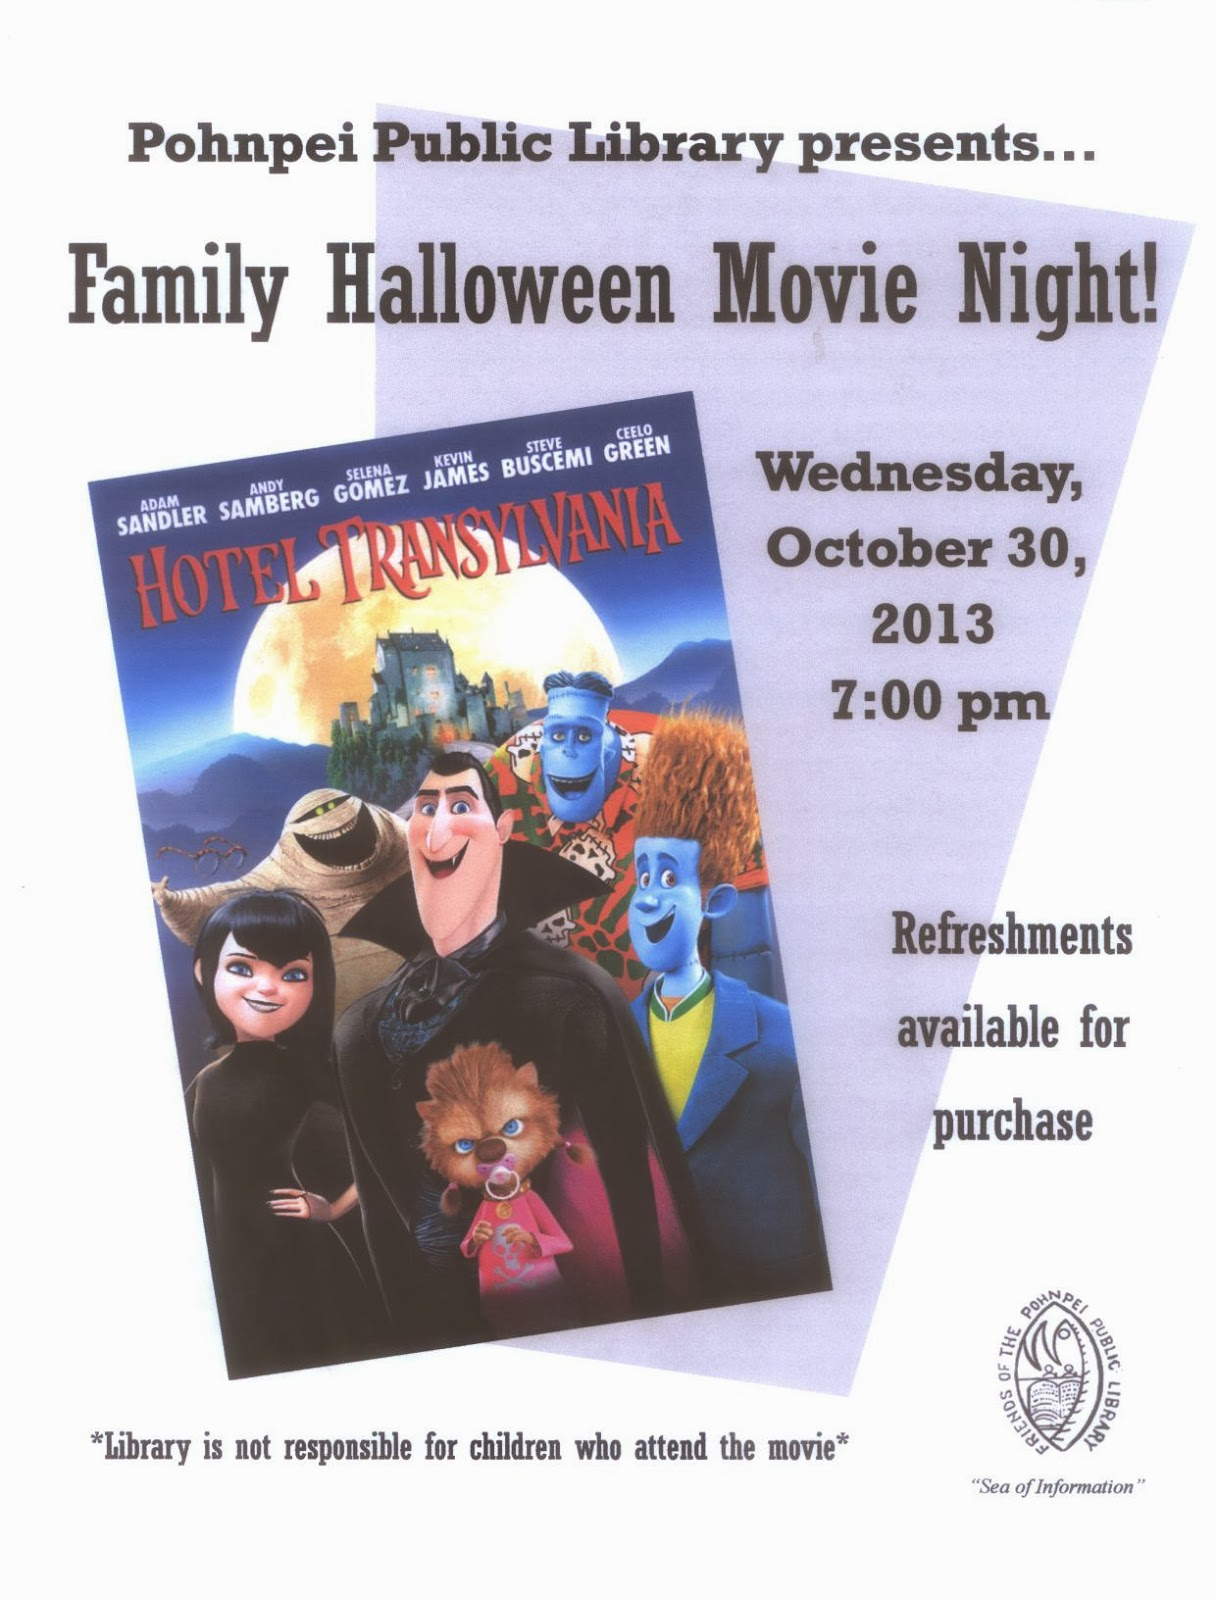 family movie night pohnpei public library pohnpei